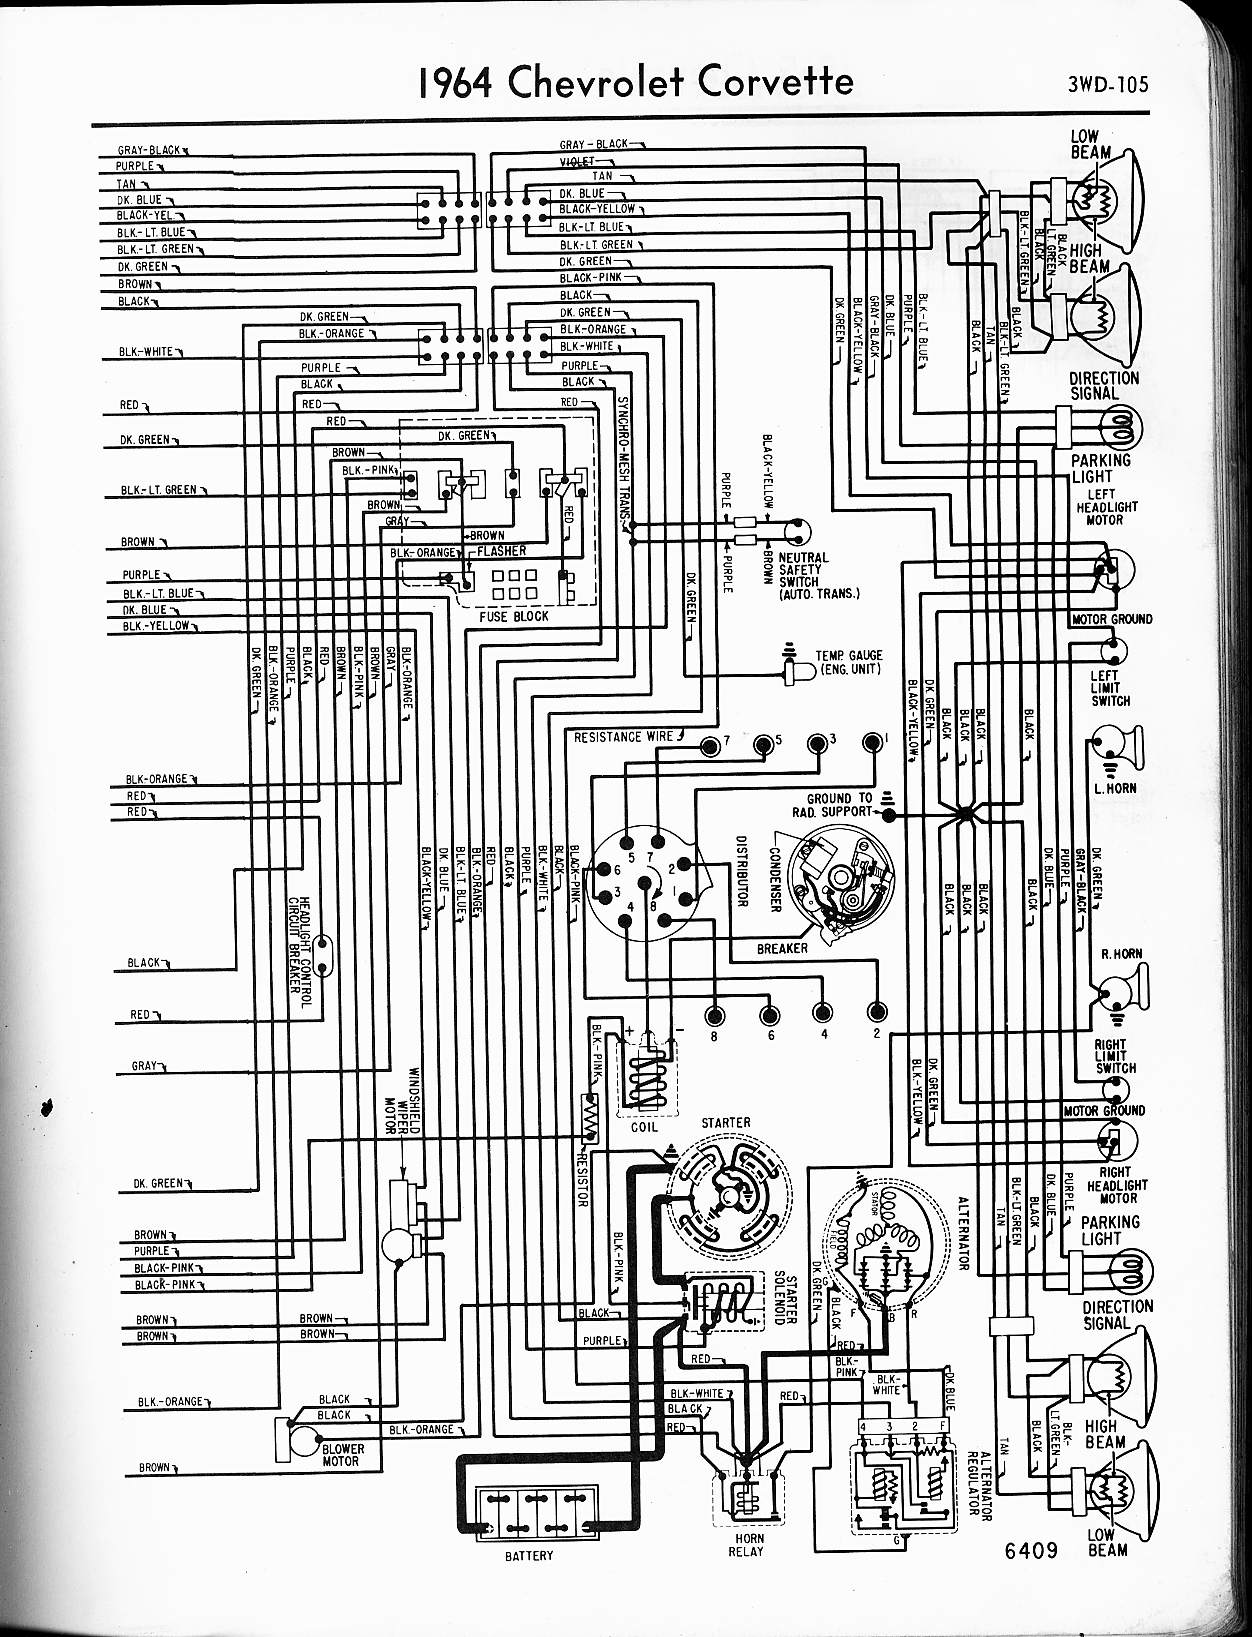 1965 corvette wiring diagram wire center u2022 rh linxglobal co 81 Corvette Wiring Diagram 1974 Corvette Hood